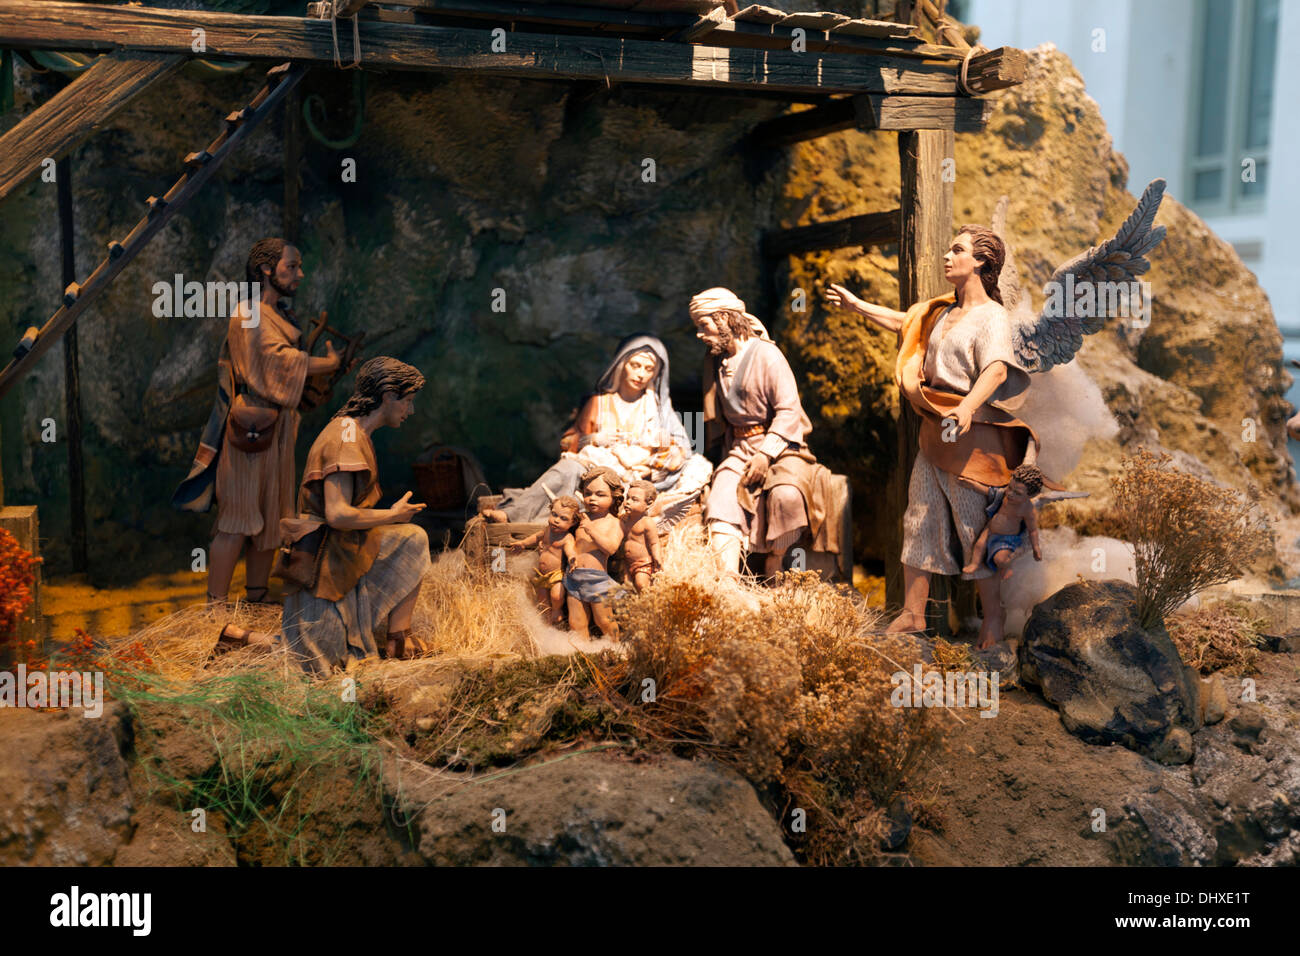 nativity-scene-beln-in-spanish-depicting